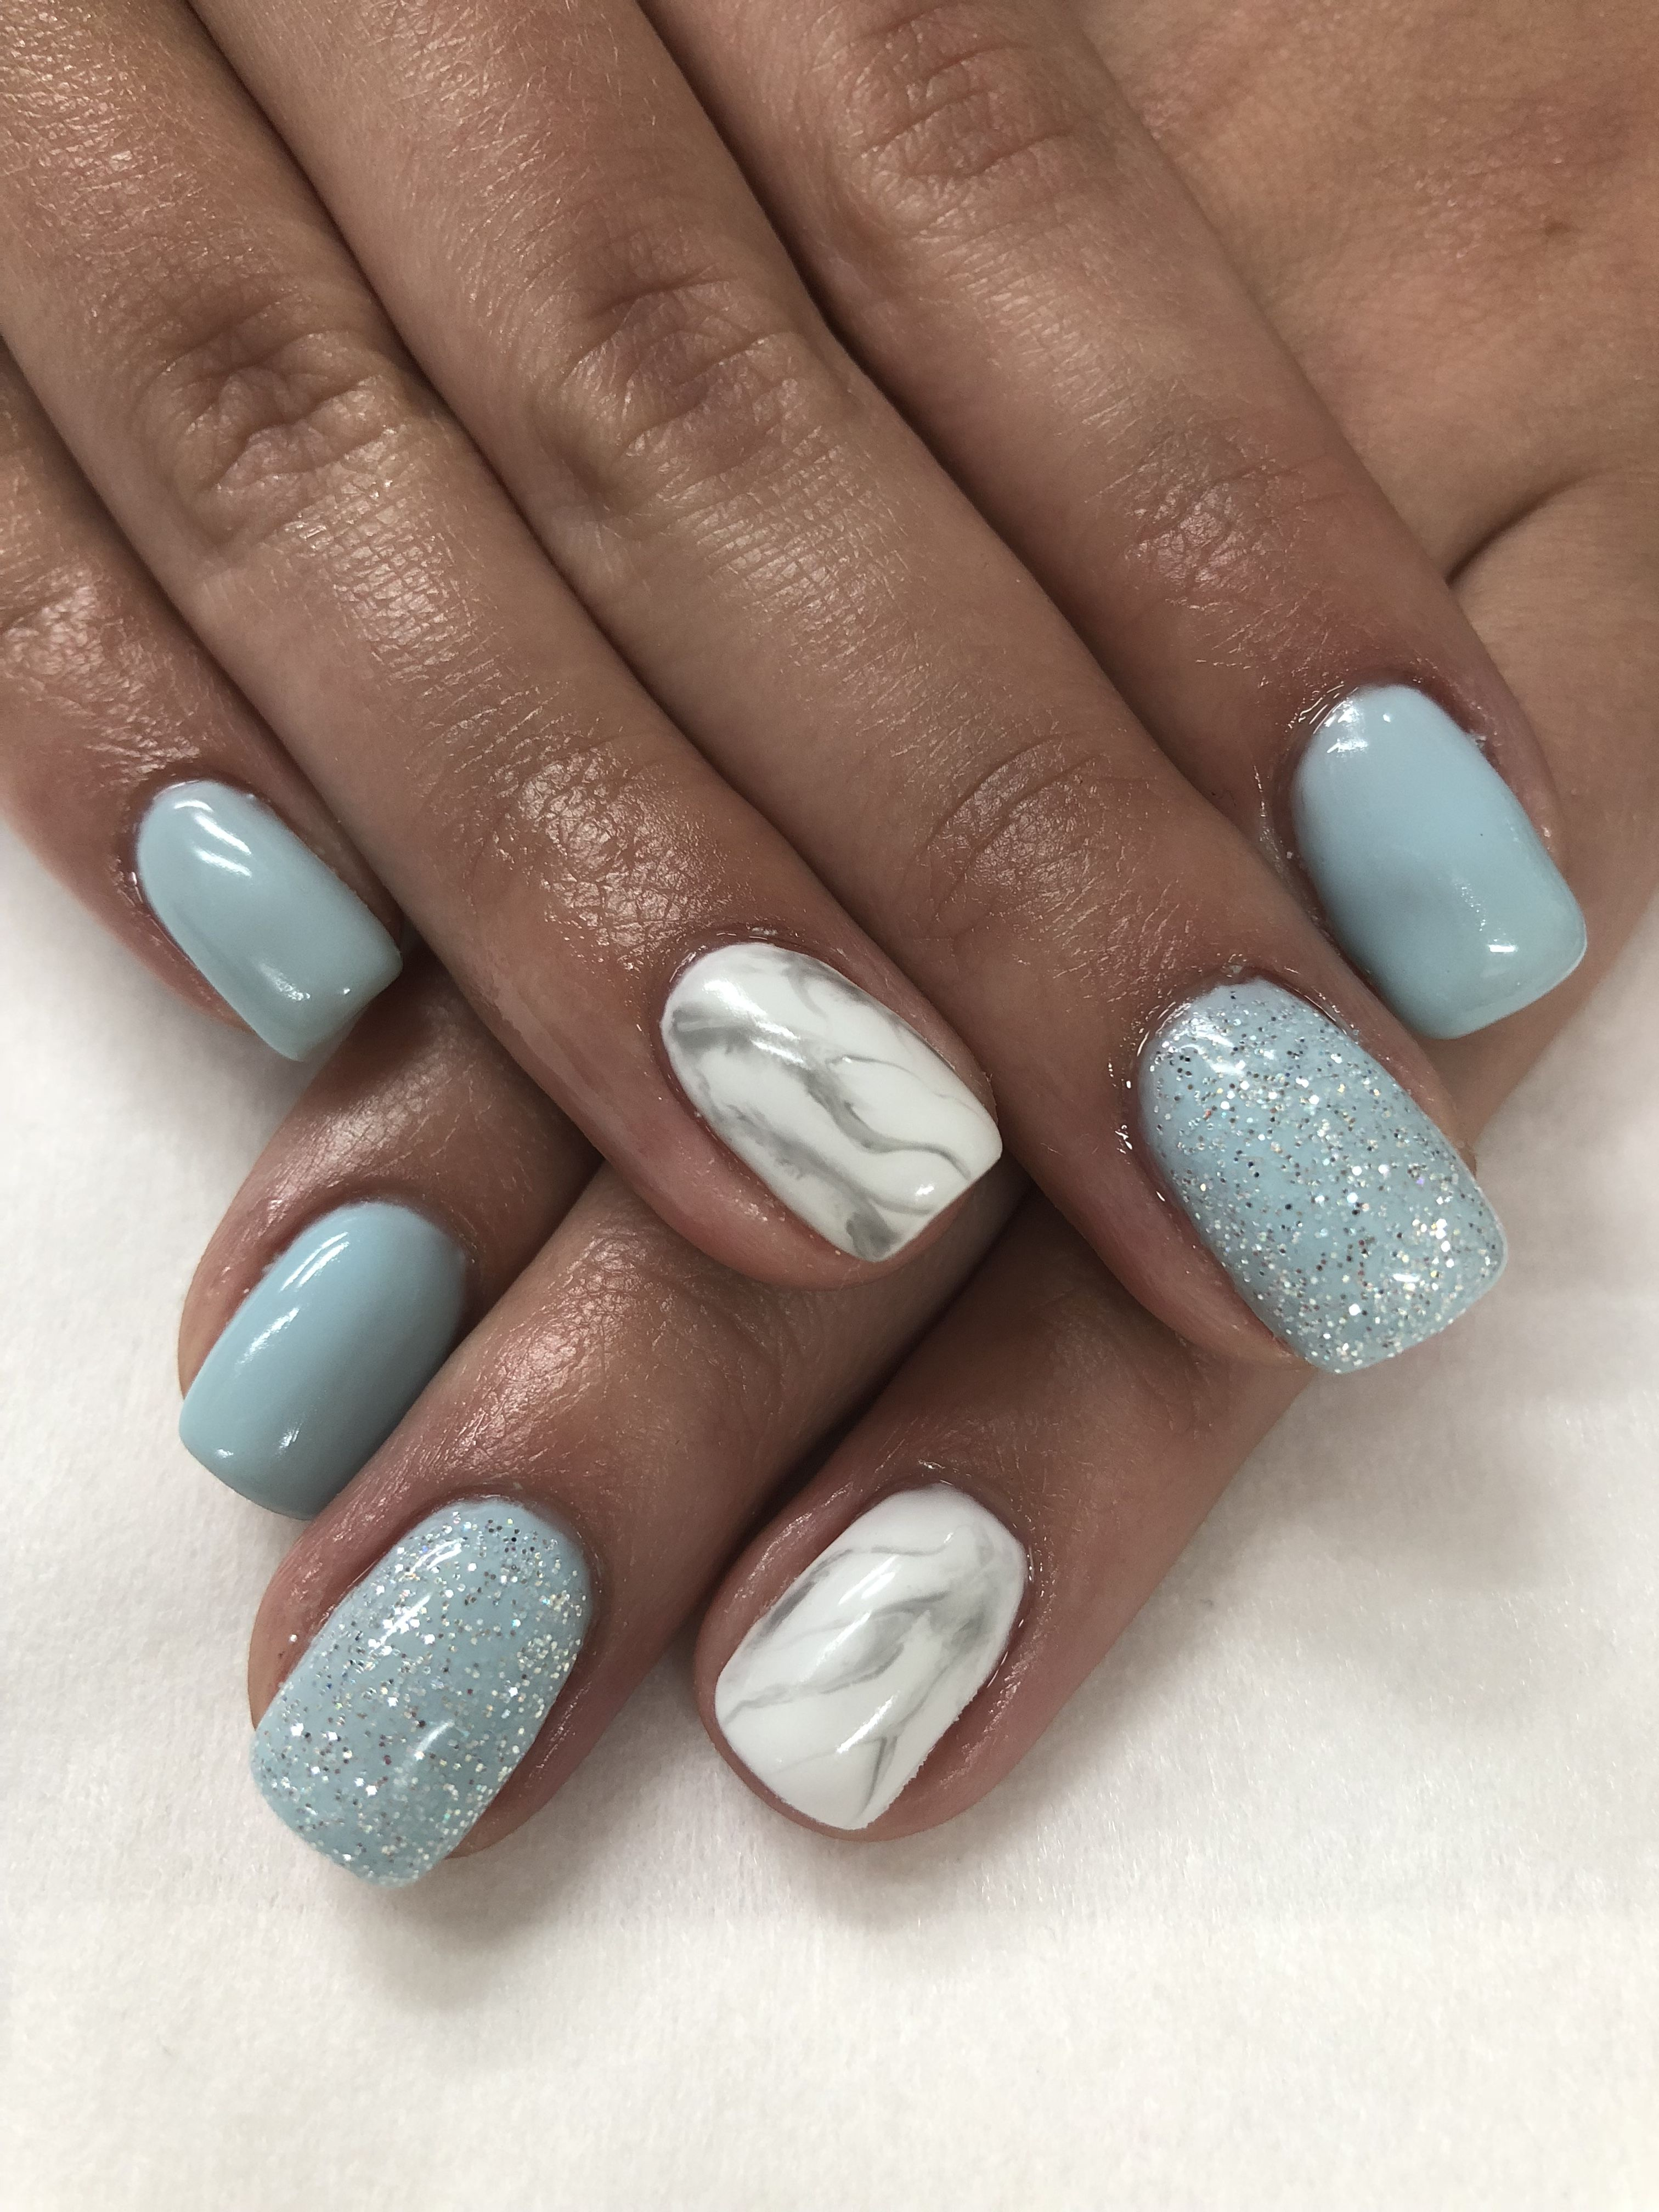 Baby Blue & White Marble Gel Nails | Spring/Easter nails | Pinterest ...